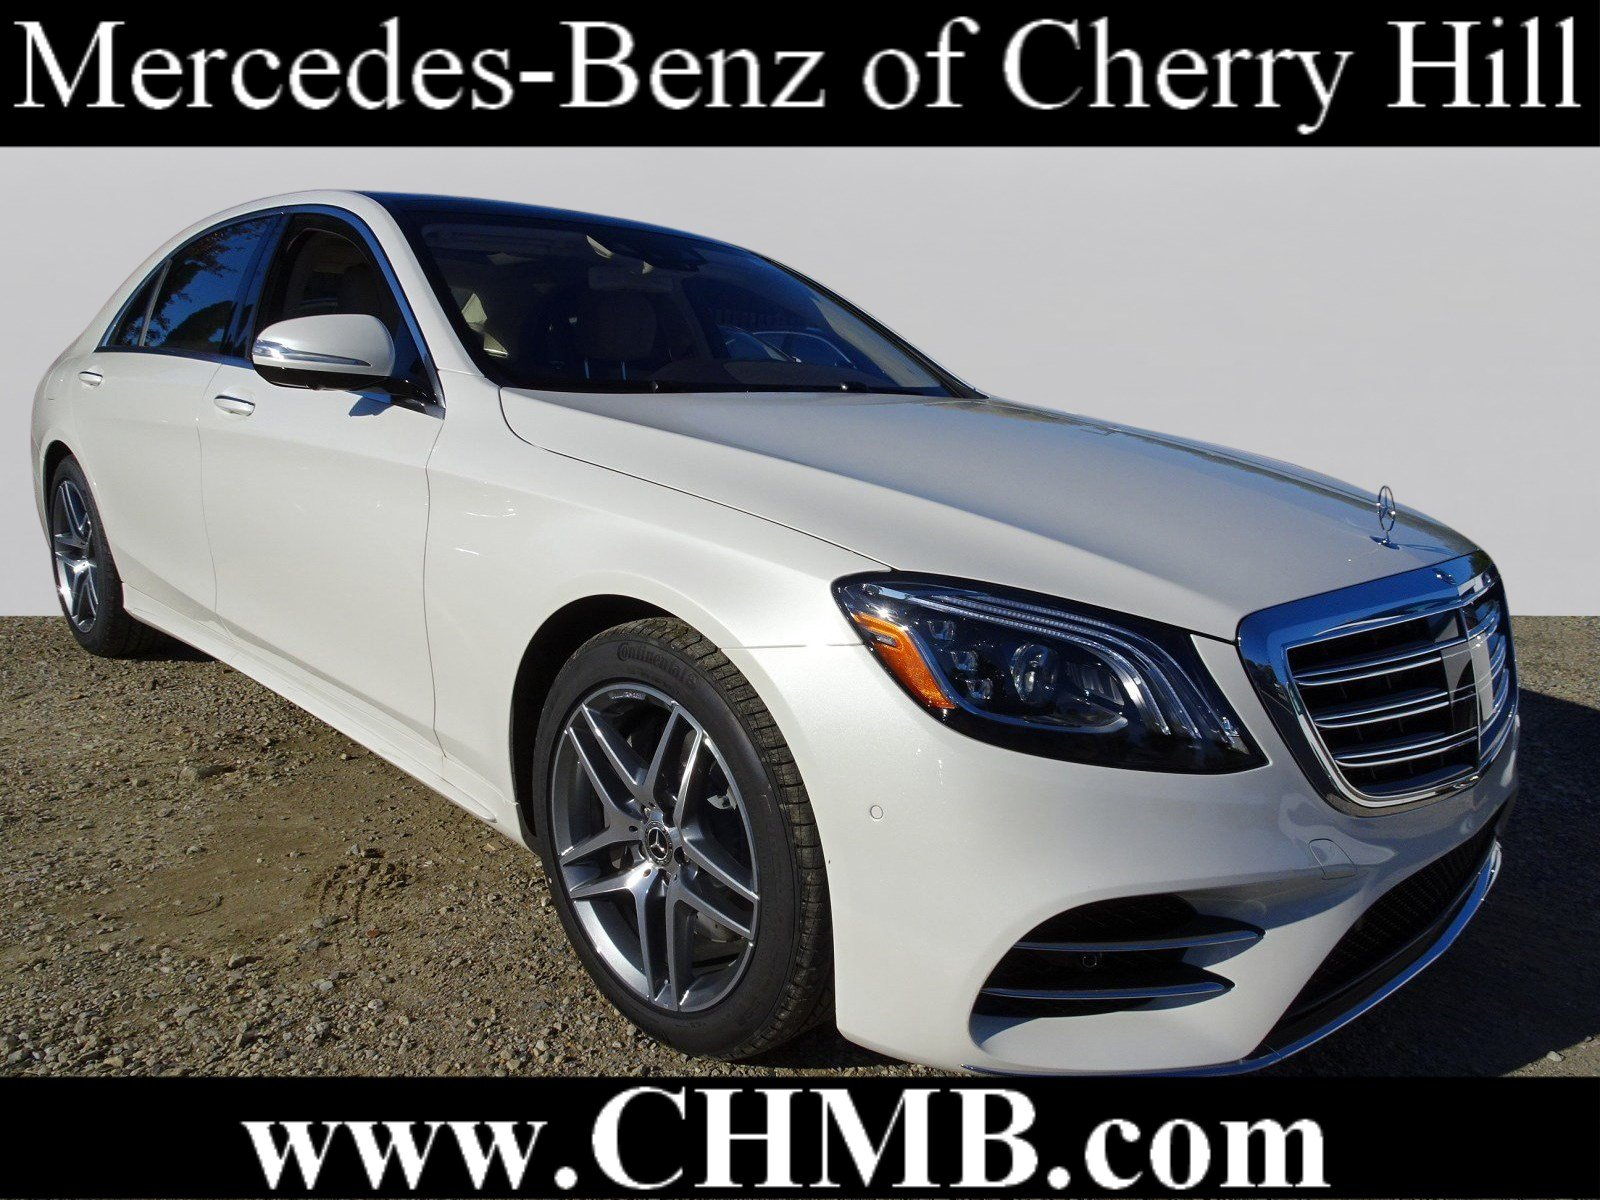 New 2019 Mercedes Benz S Class S 560 SEDAN in Cherry Hill M2484